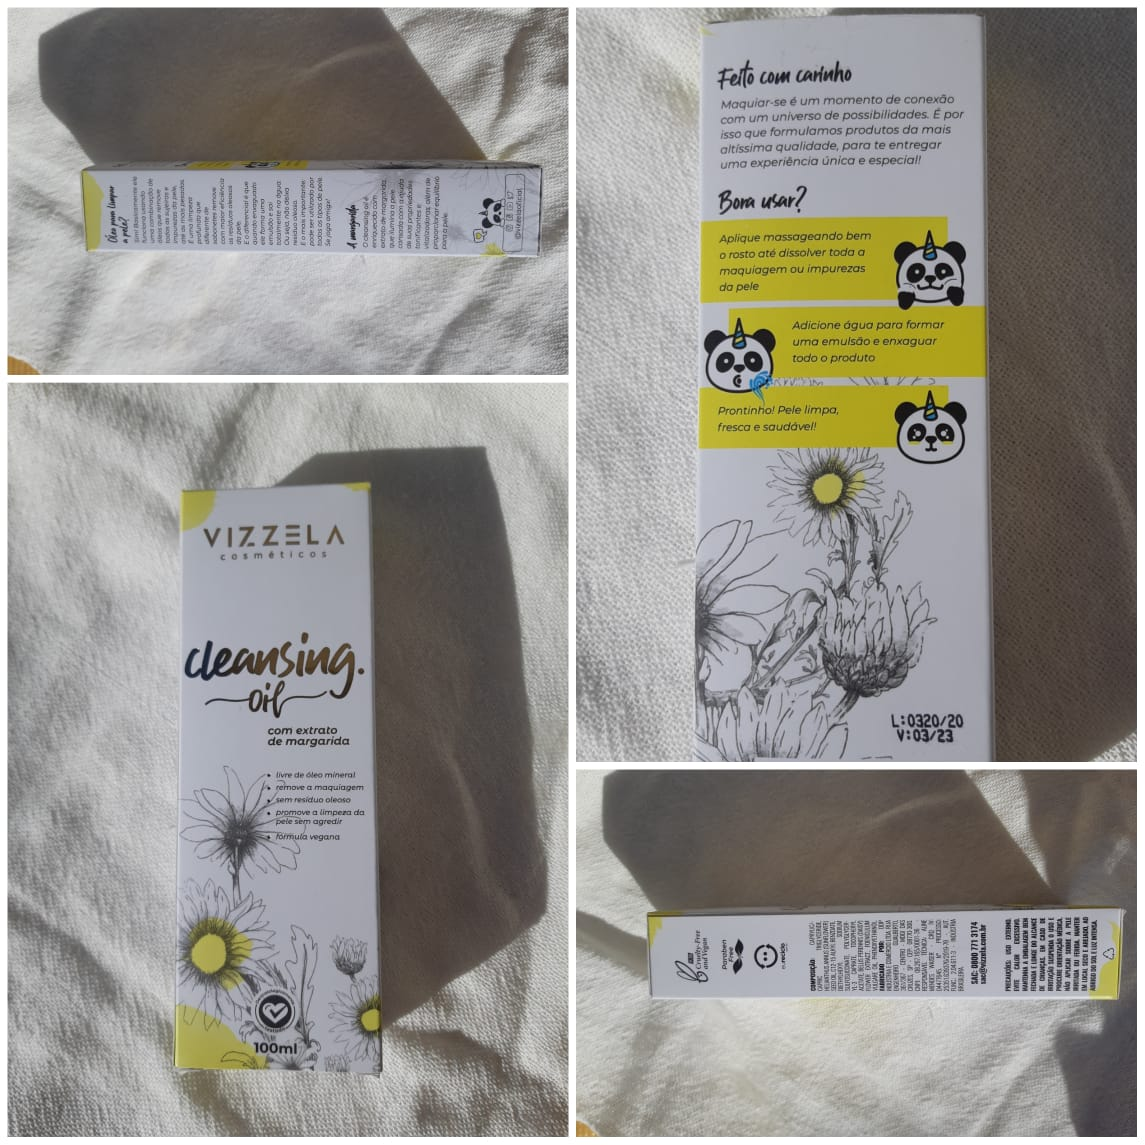 cleansing oil da vizzela